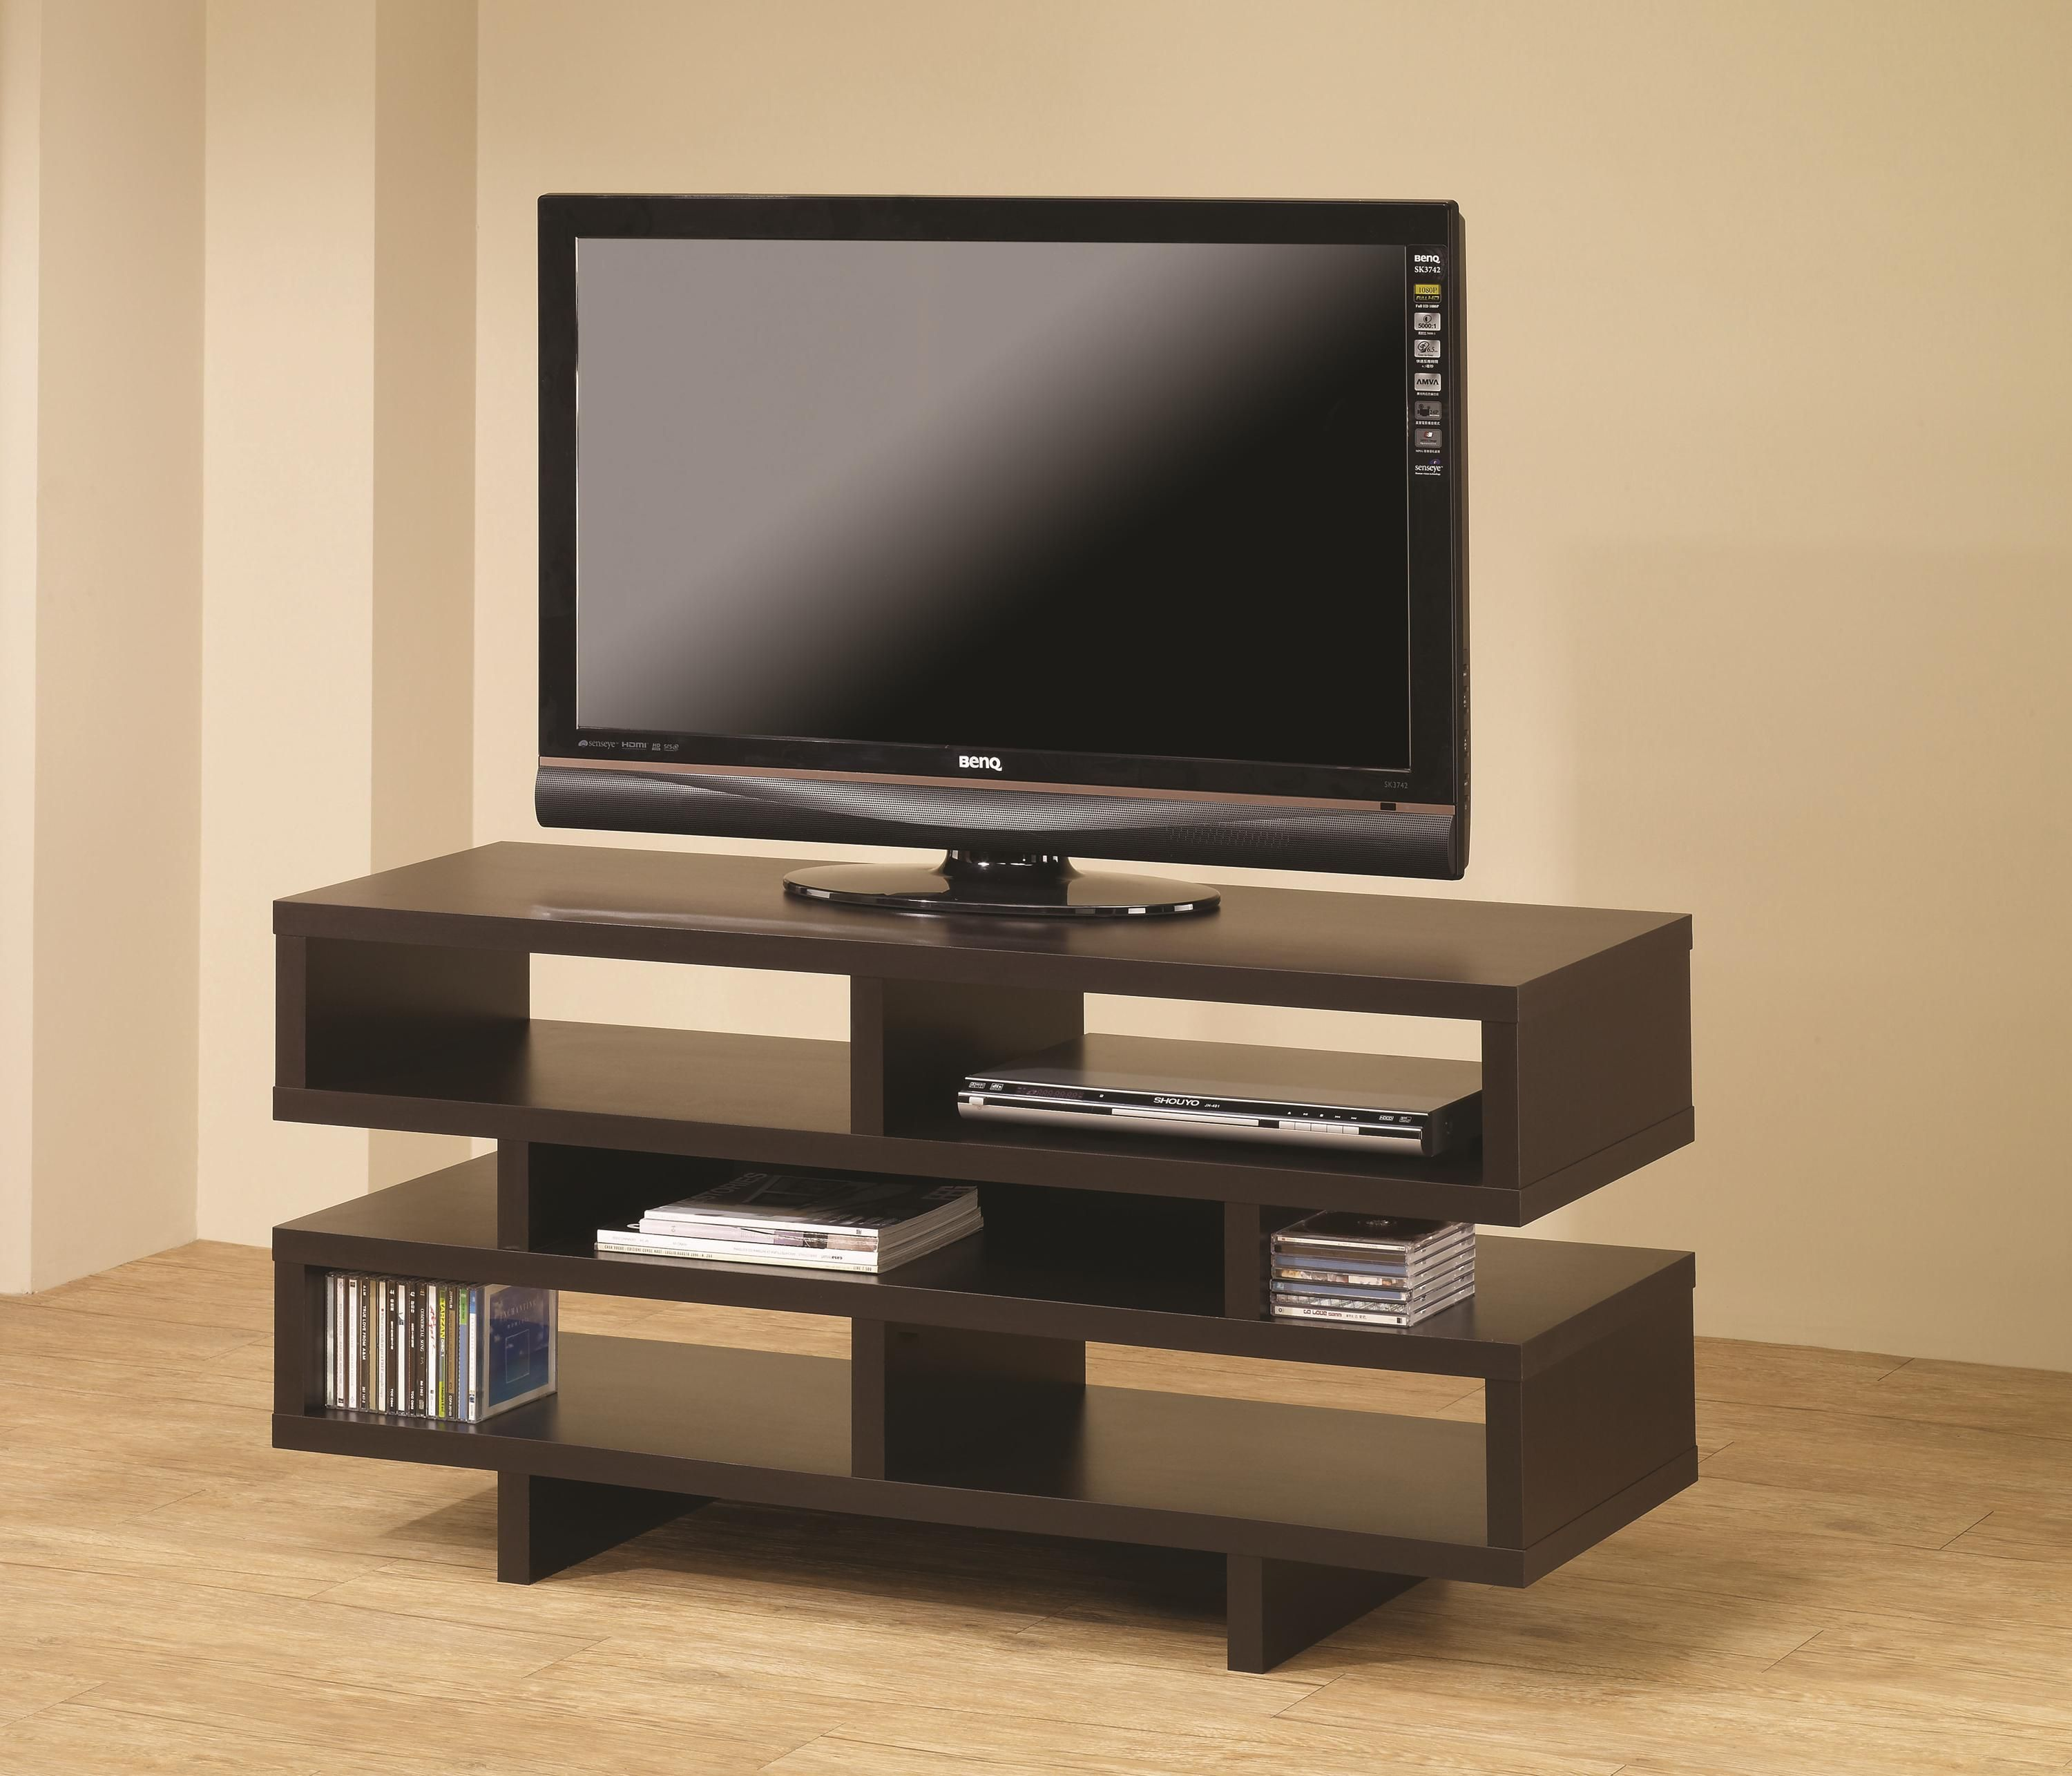 tv stands contemporary tv console with open storage  cappuccino  - tv stands contemporary tv console with open storage  cappuccino finish bycoaster  coaster